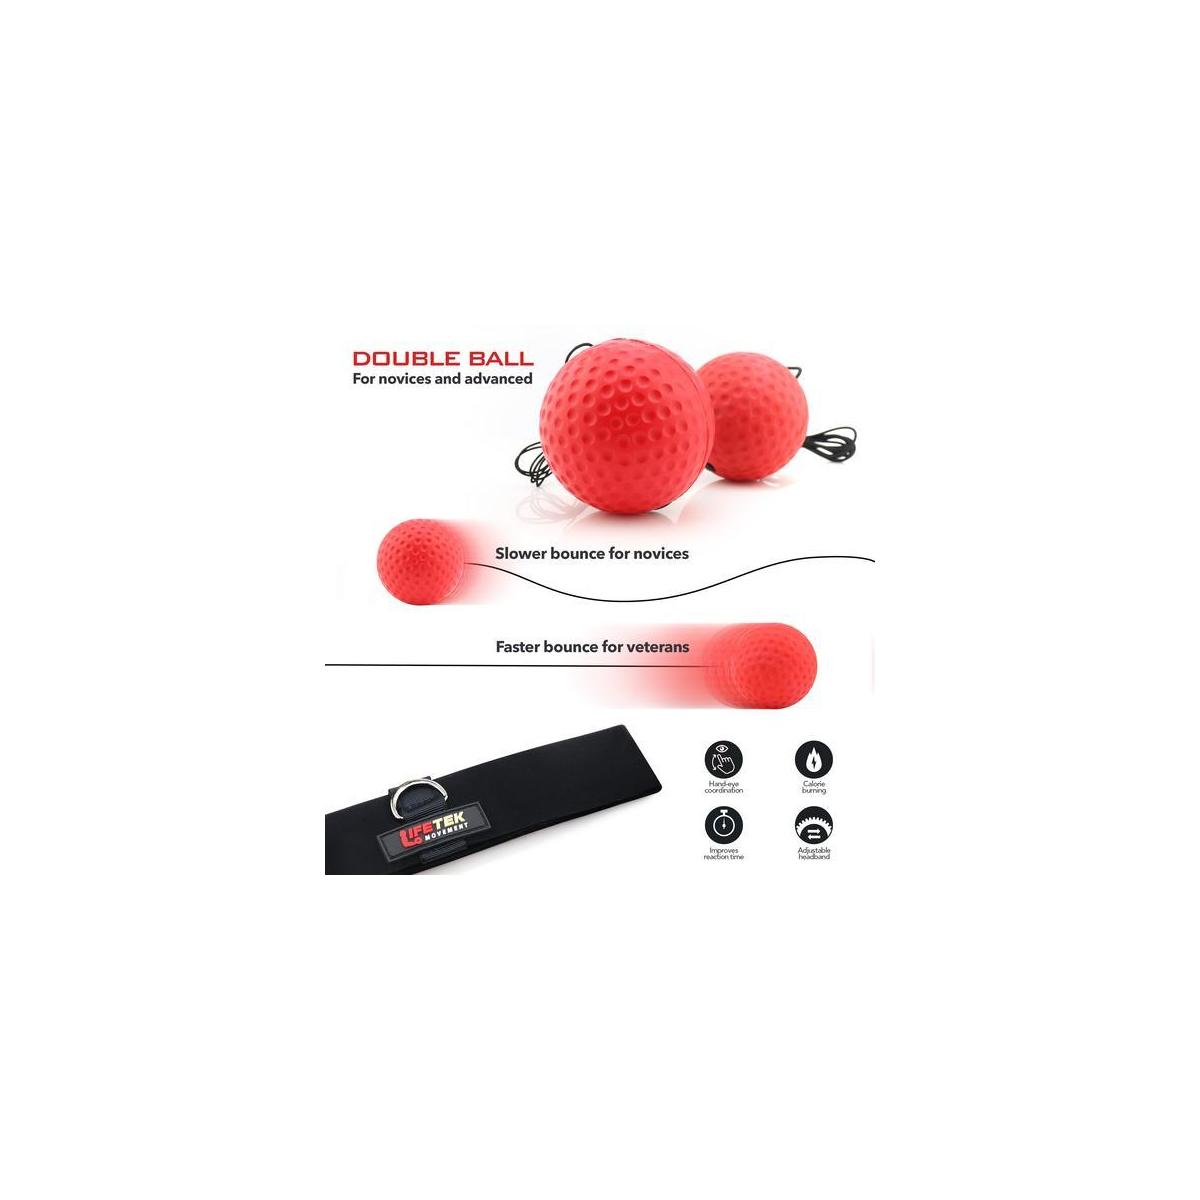 for Adults /& Kids Hand Eye Coordination /& Reflex Punching Equipment for Cardio /& Fitness Workout Headband /& Hand Wraps Included Improve Your Reaction Speed LIFETEK Boxing Reflex Ball